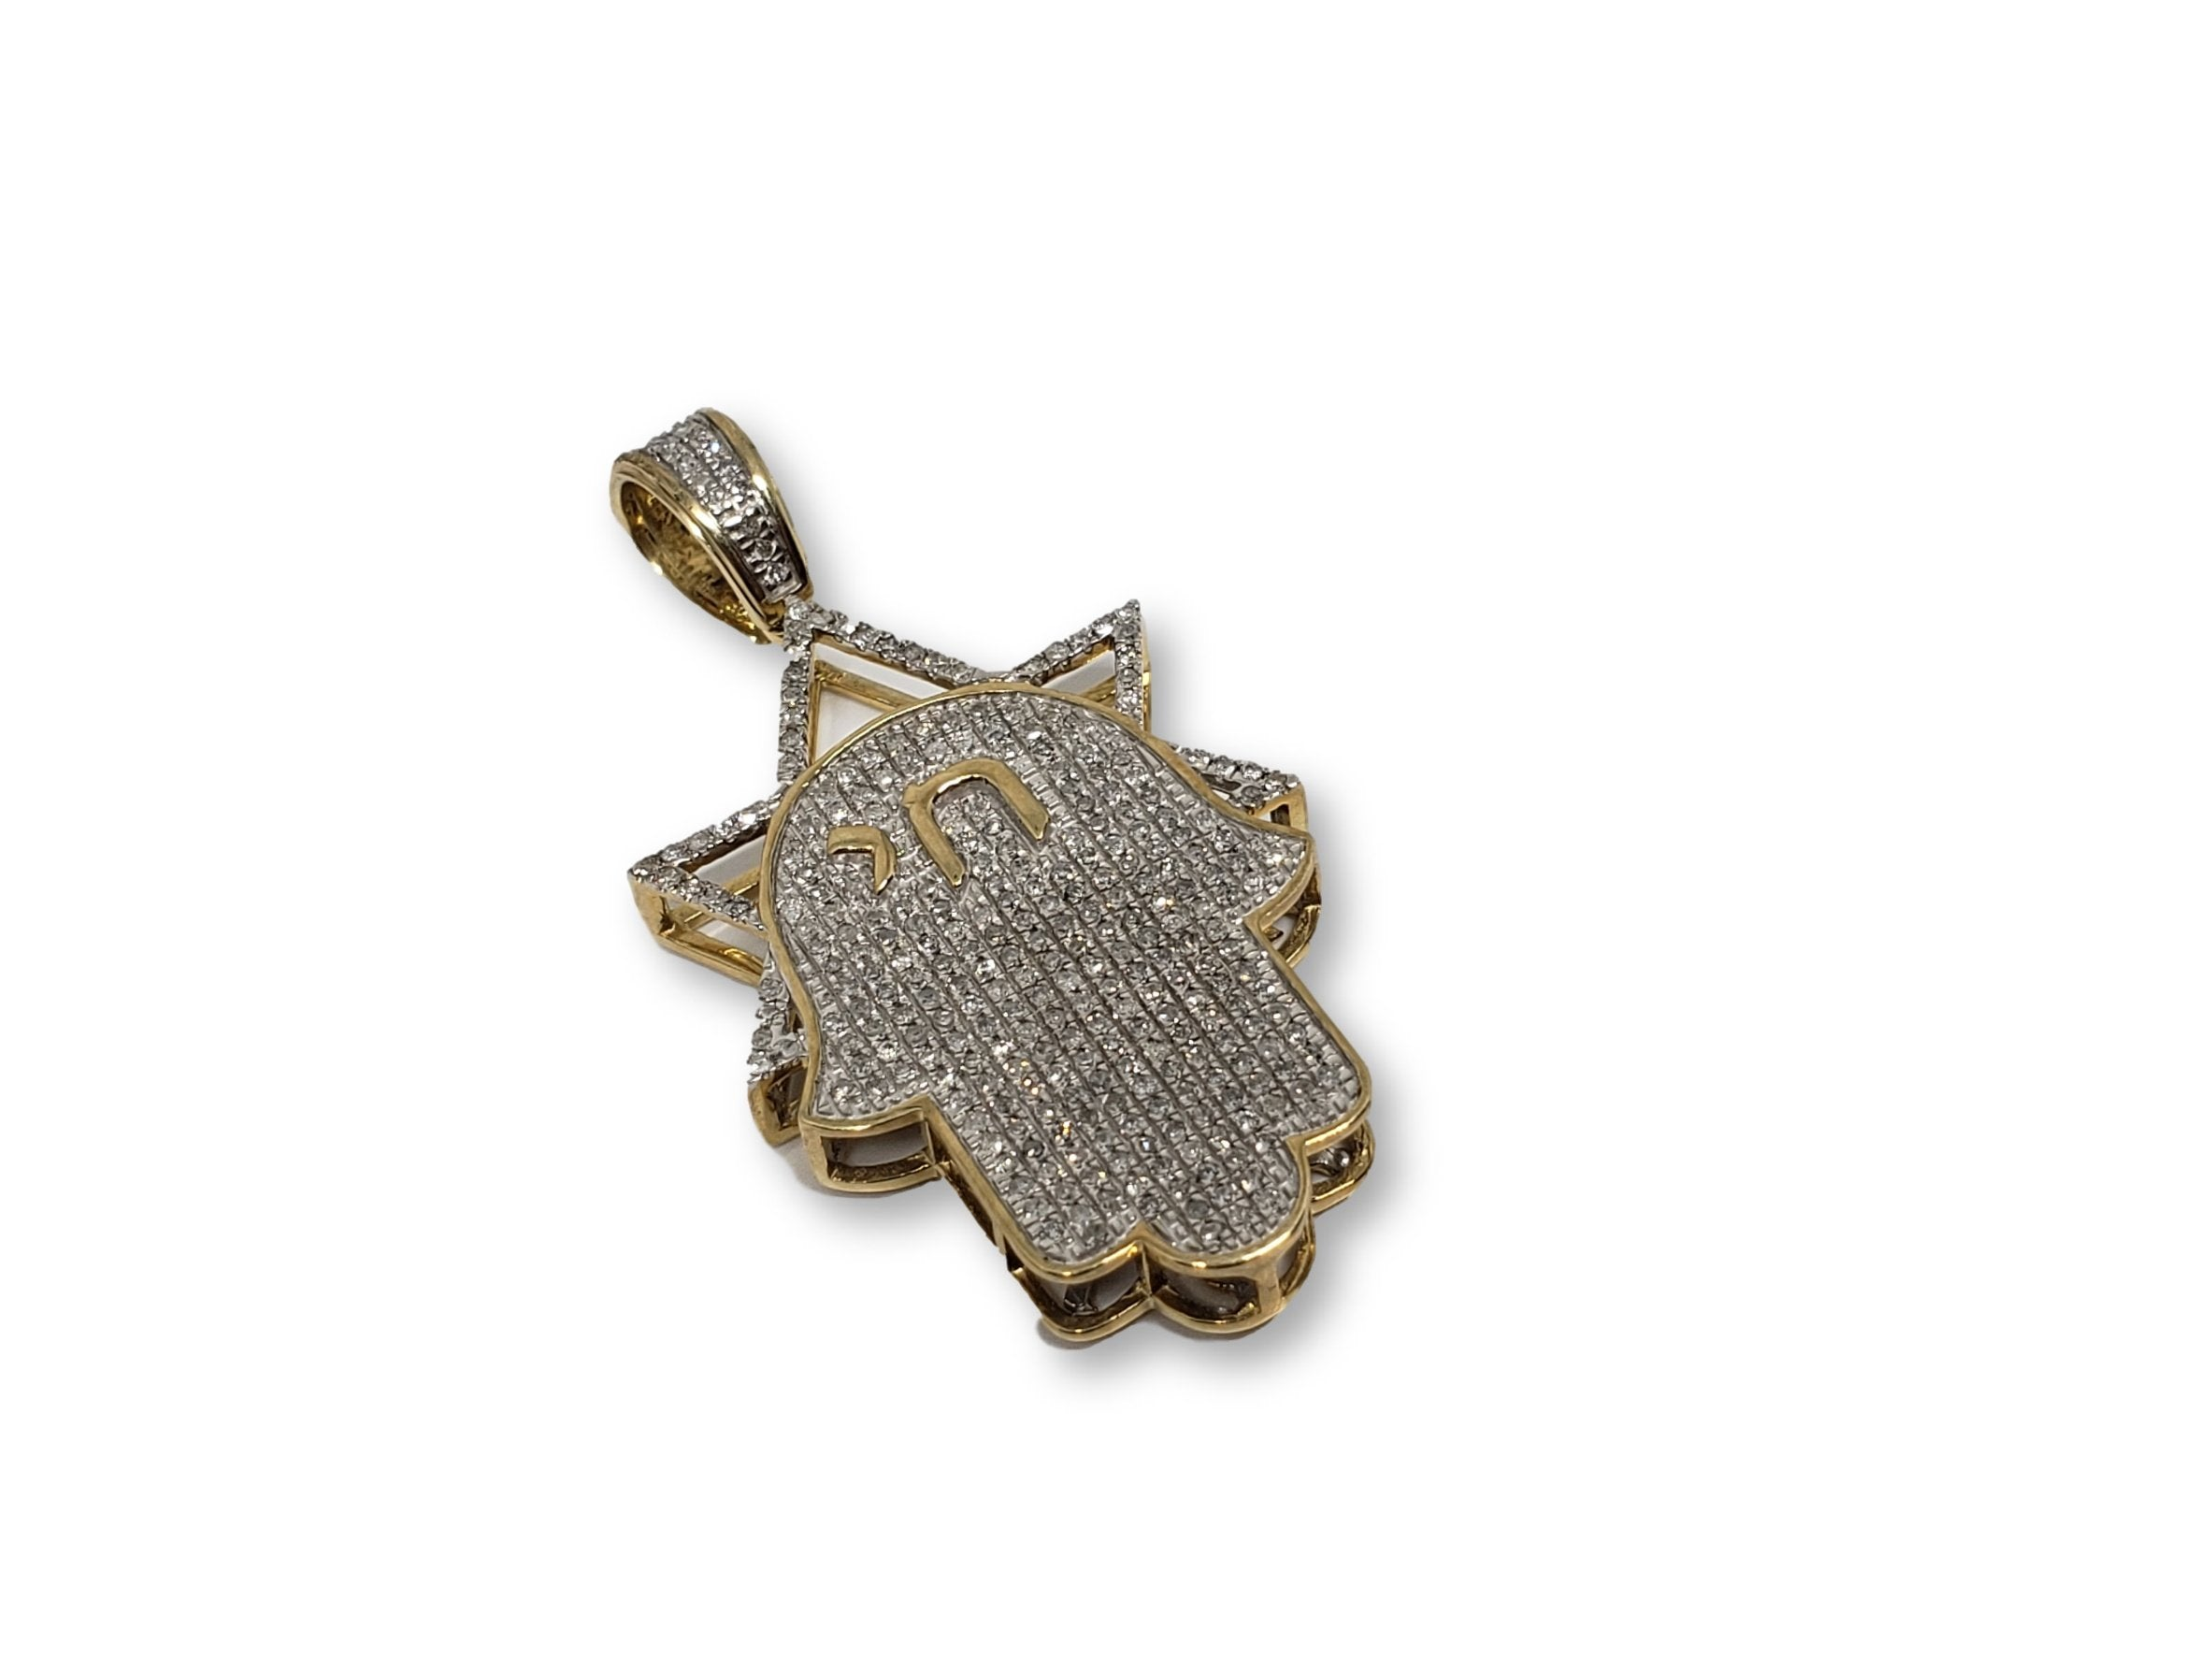 Hamsa 0.59CT Diamants en or jaune 10K - orquebec